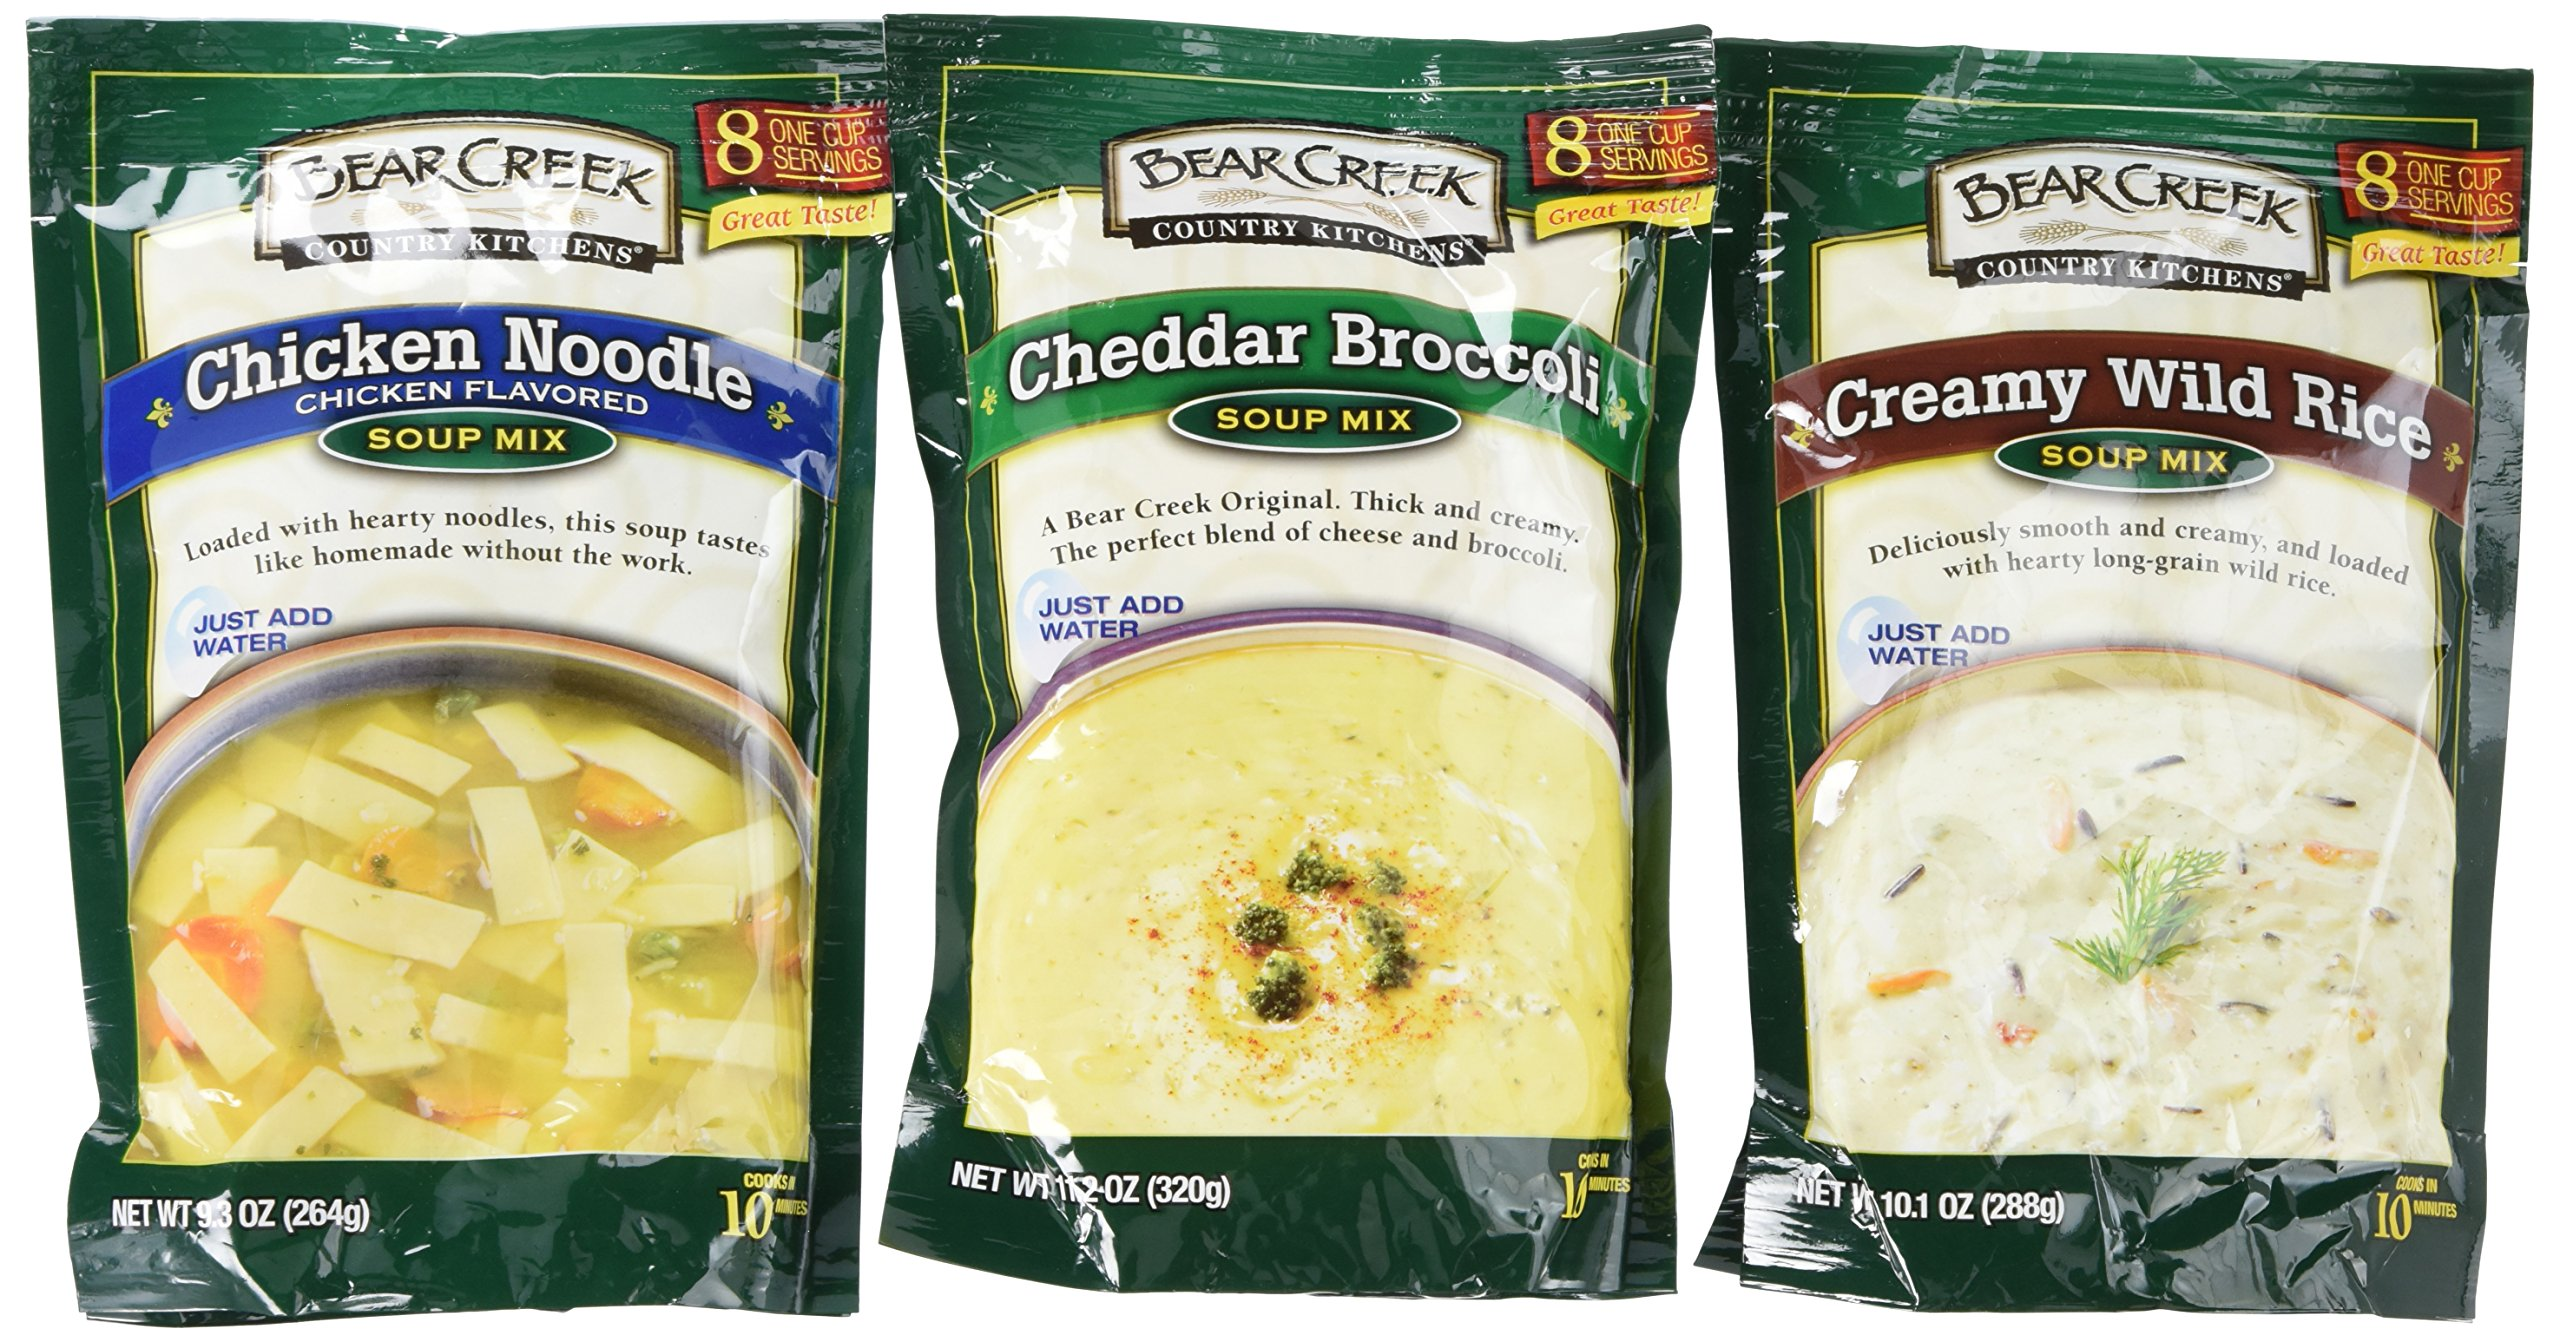 Bear Creek Country Kitchens Dry Soup Mix 6-Pack: 2 Chicken Noodle, 2 Creamy Wild Rice, 2 Cheddar Broccoli, Each Package Makes 8 Hearty One-Cup Servings, Just Add Water! by Bear Creek by Bear Creek